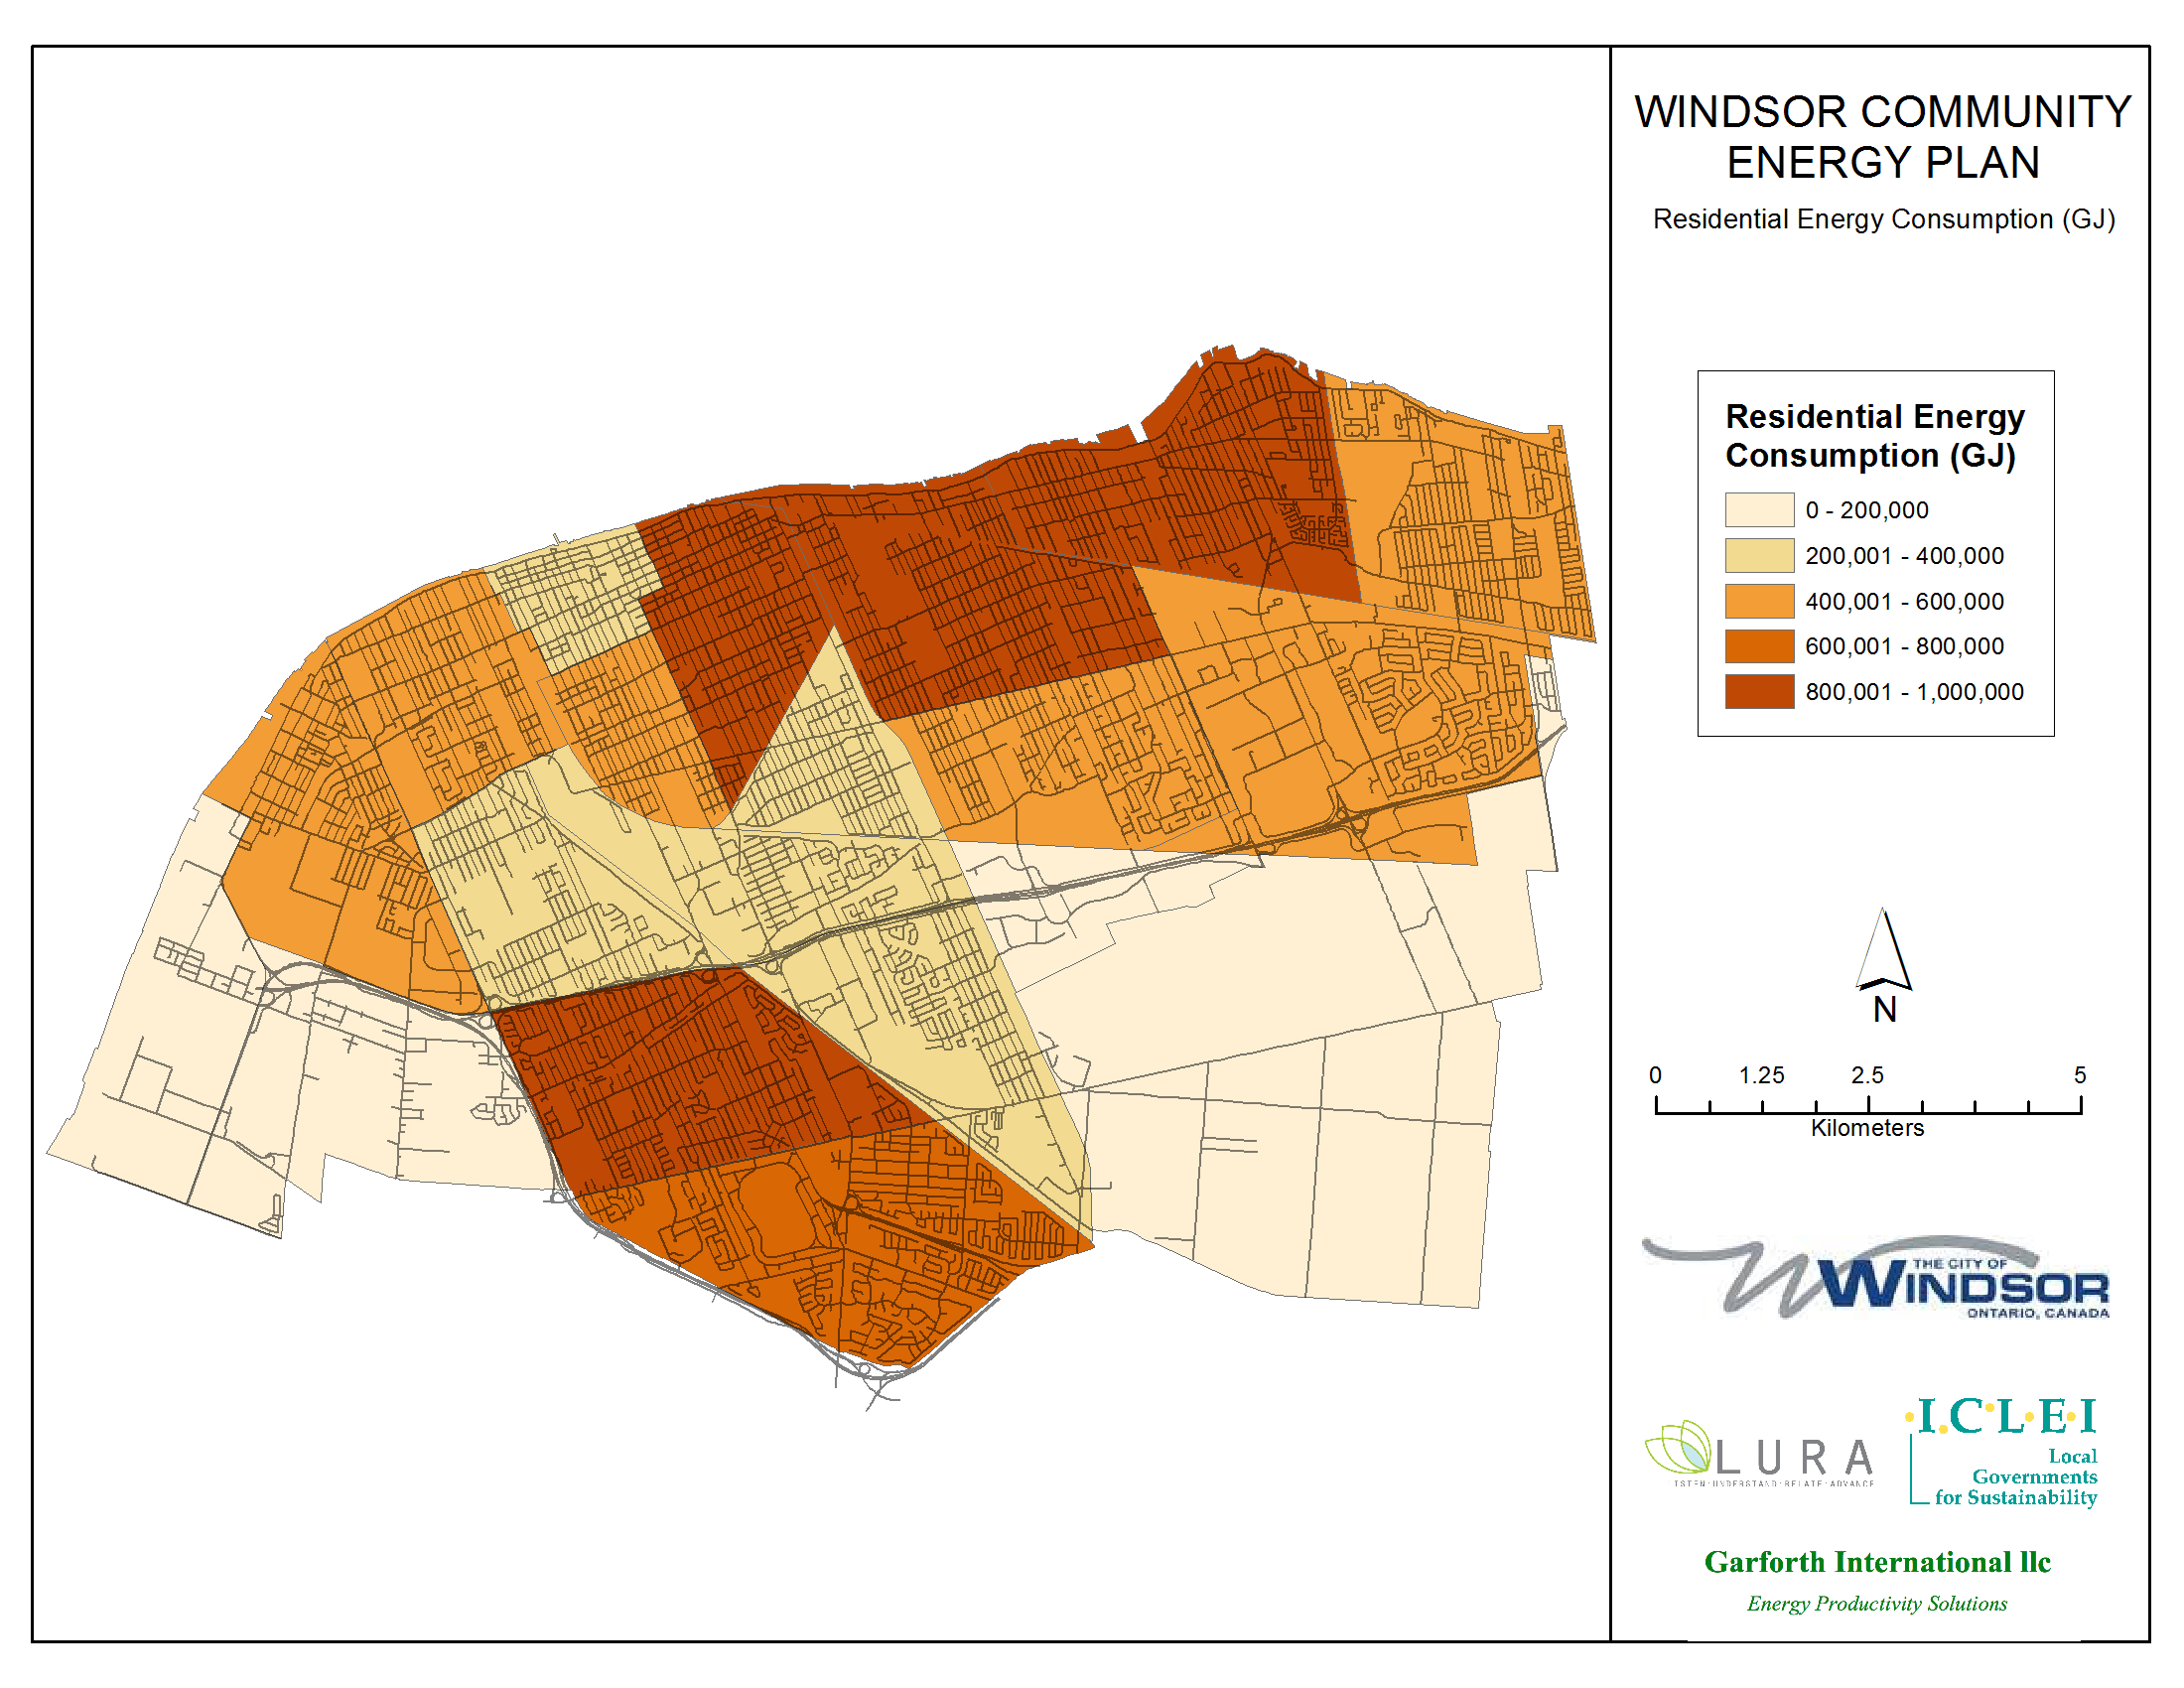 Thumbnail map of residential energy consumption within the City of Windsor